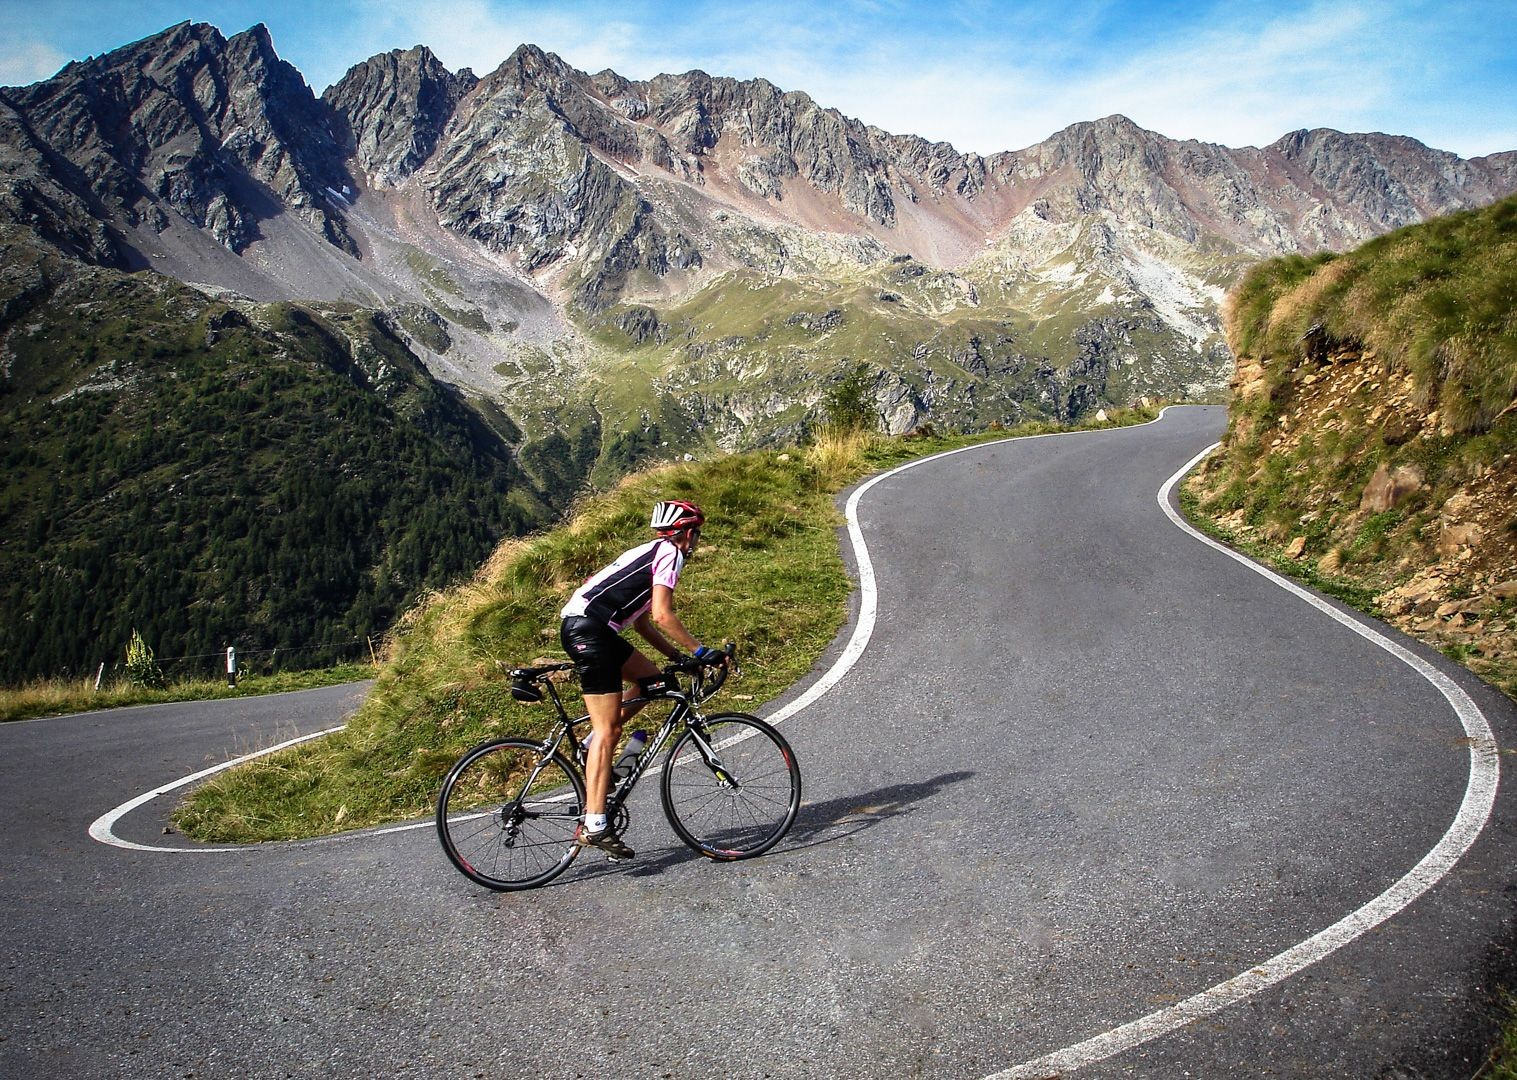 stevilo-pass-italy-road-cycling-guided-tour.jpg - Italy - Alps and Dolomites - Giants of the Giro - Guided Road Cycling Holiday - Road Cycling